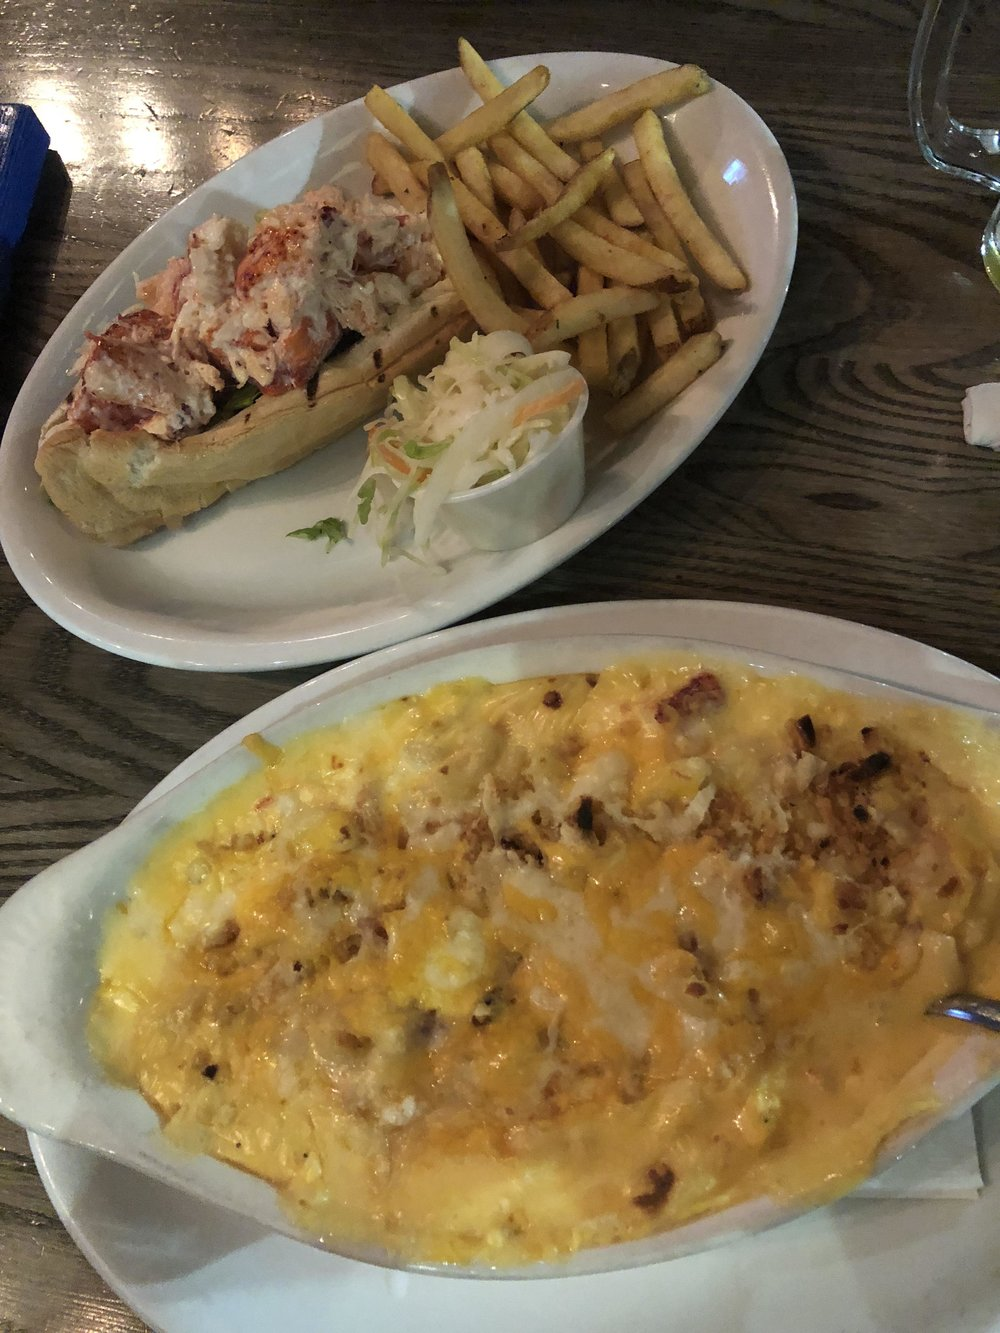 I ordered the Lobster Mac and Michael ordered the Lobster Roll. Both were good but the Lobster Roll was on point and definitely our favorite.